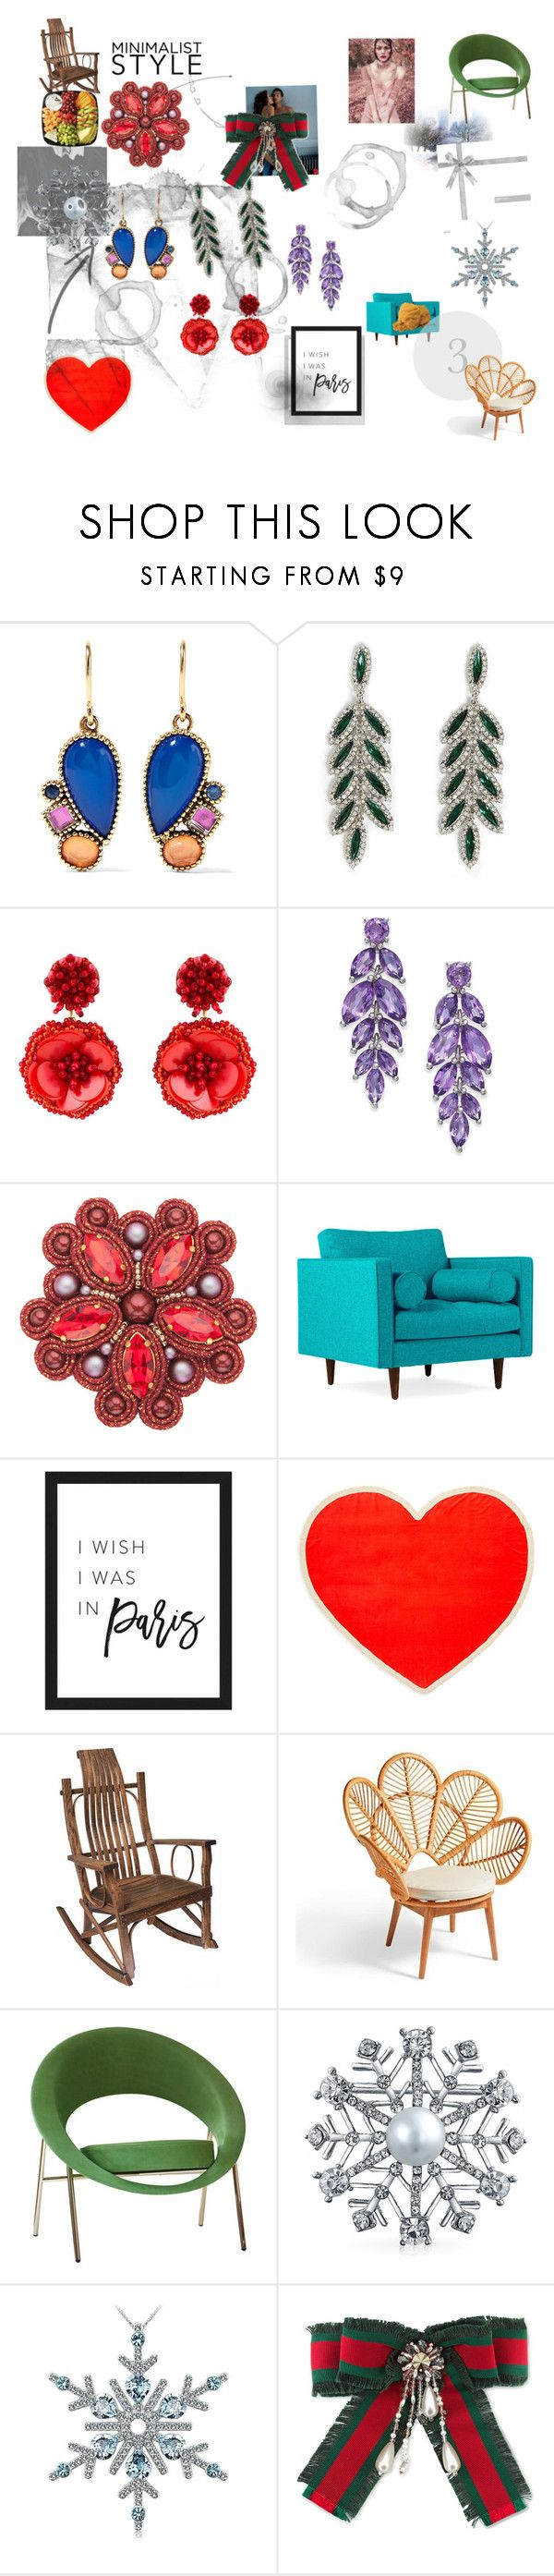 """1"" by specvozmoznosti on Polyvore featuring Larkspur & Hawk, Forever 21, Mignonne Gavigan, Whiteley, Joybird, Polaroid, ban.do, Grandin Road, Bling Jewelry и Gucci"